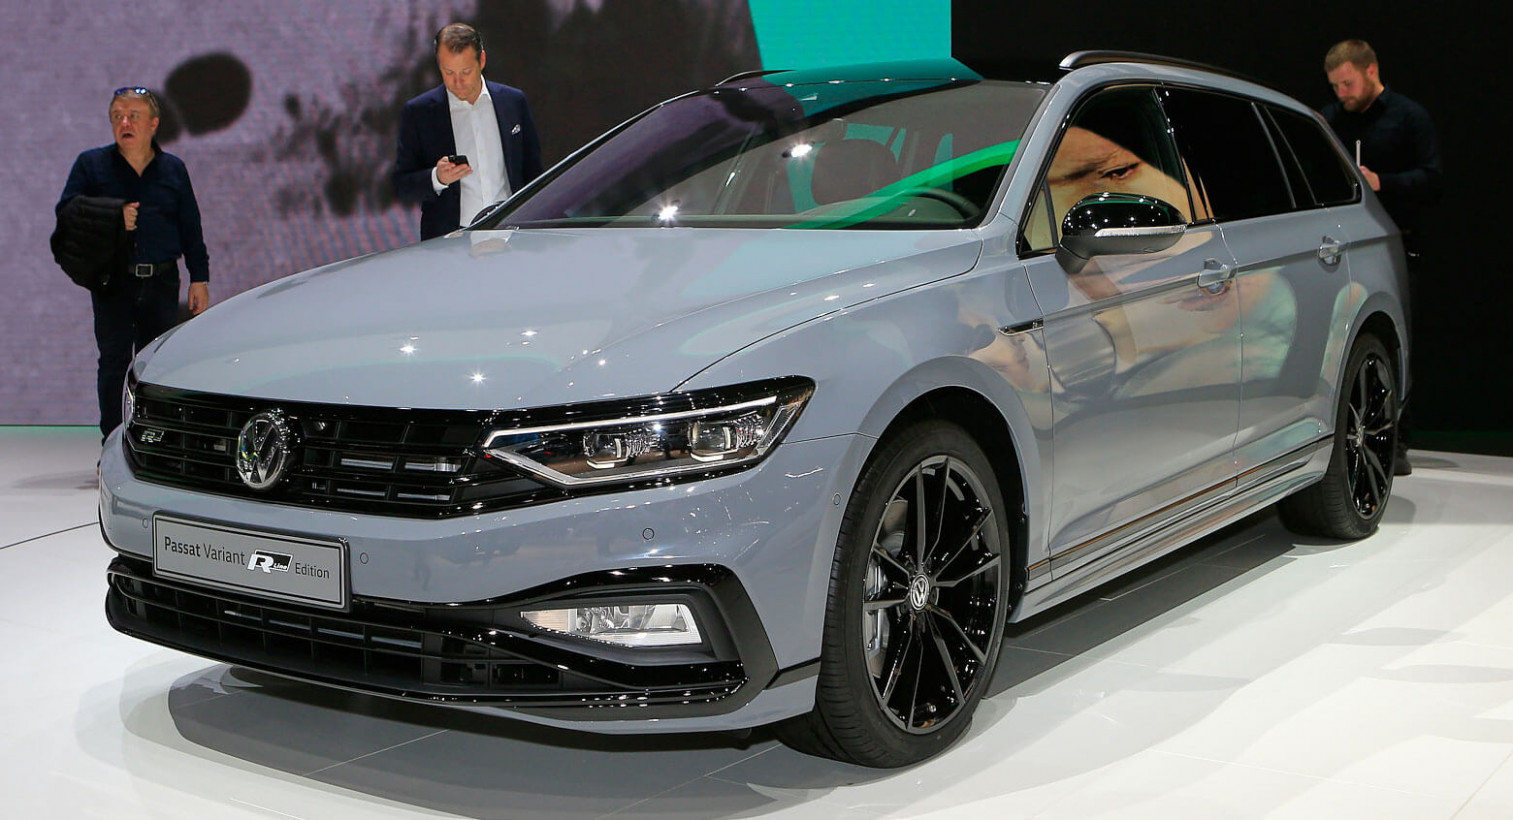 11 VW Passat Variant R-Line Edition Is Inconspicuous In A Good ...